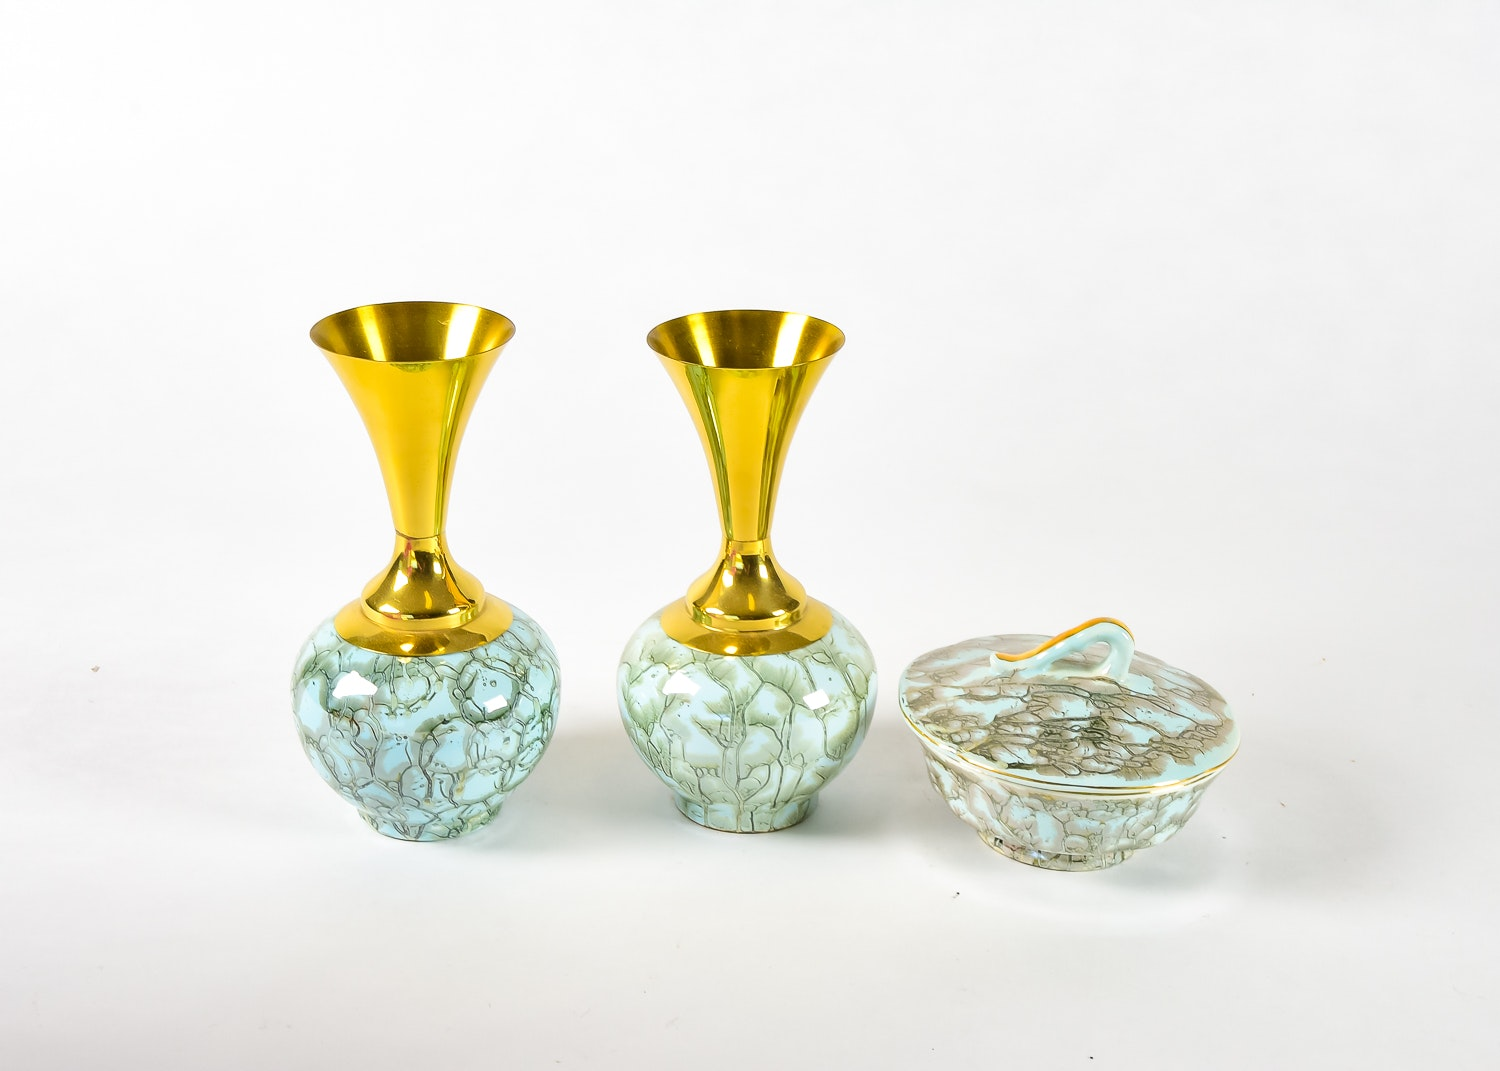 Pair of Hand-Painted Vases and a Matching Bowl